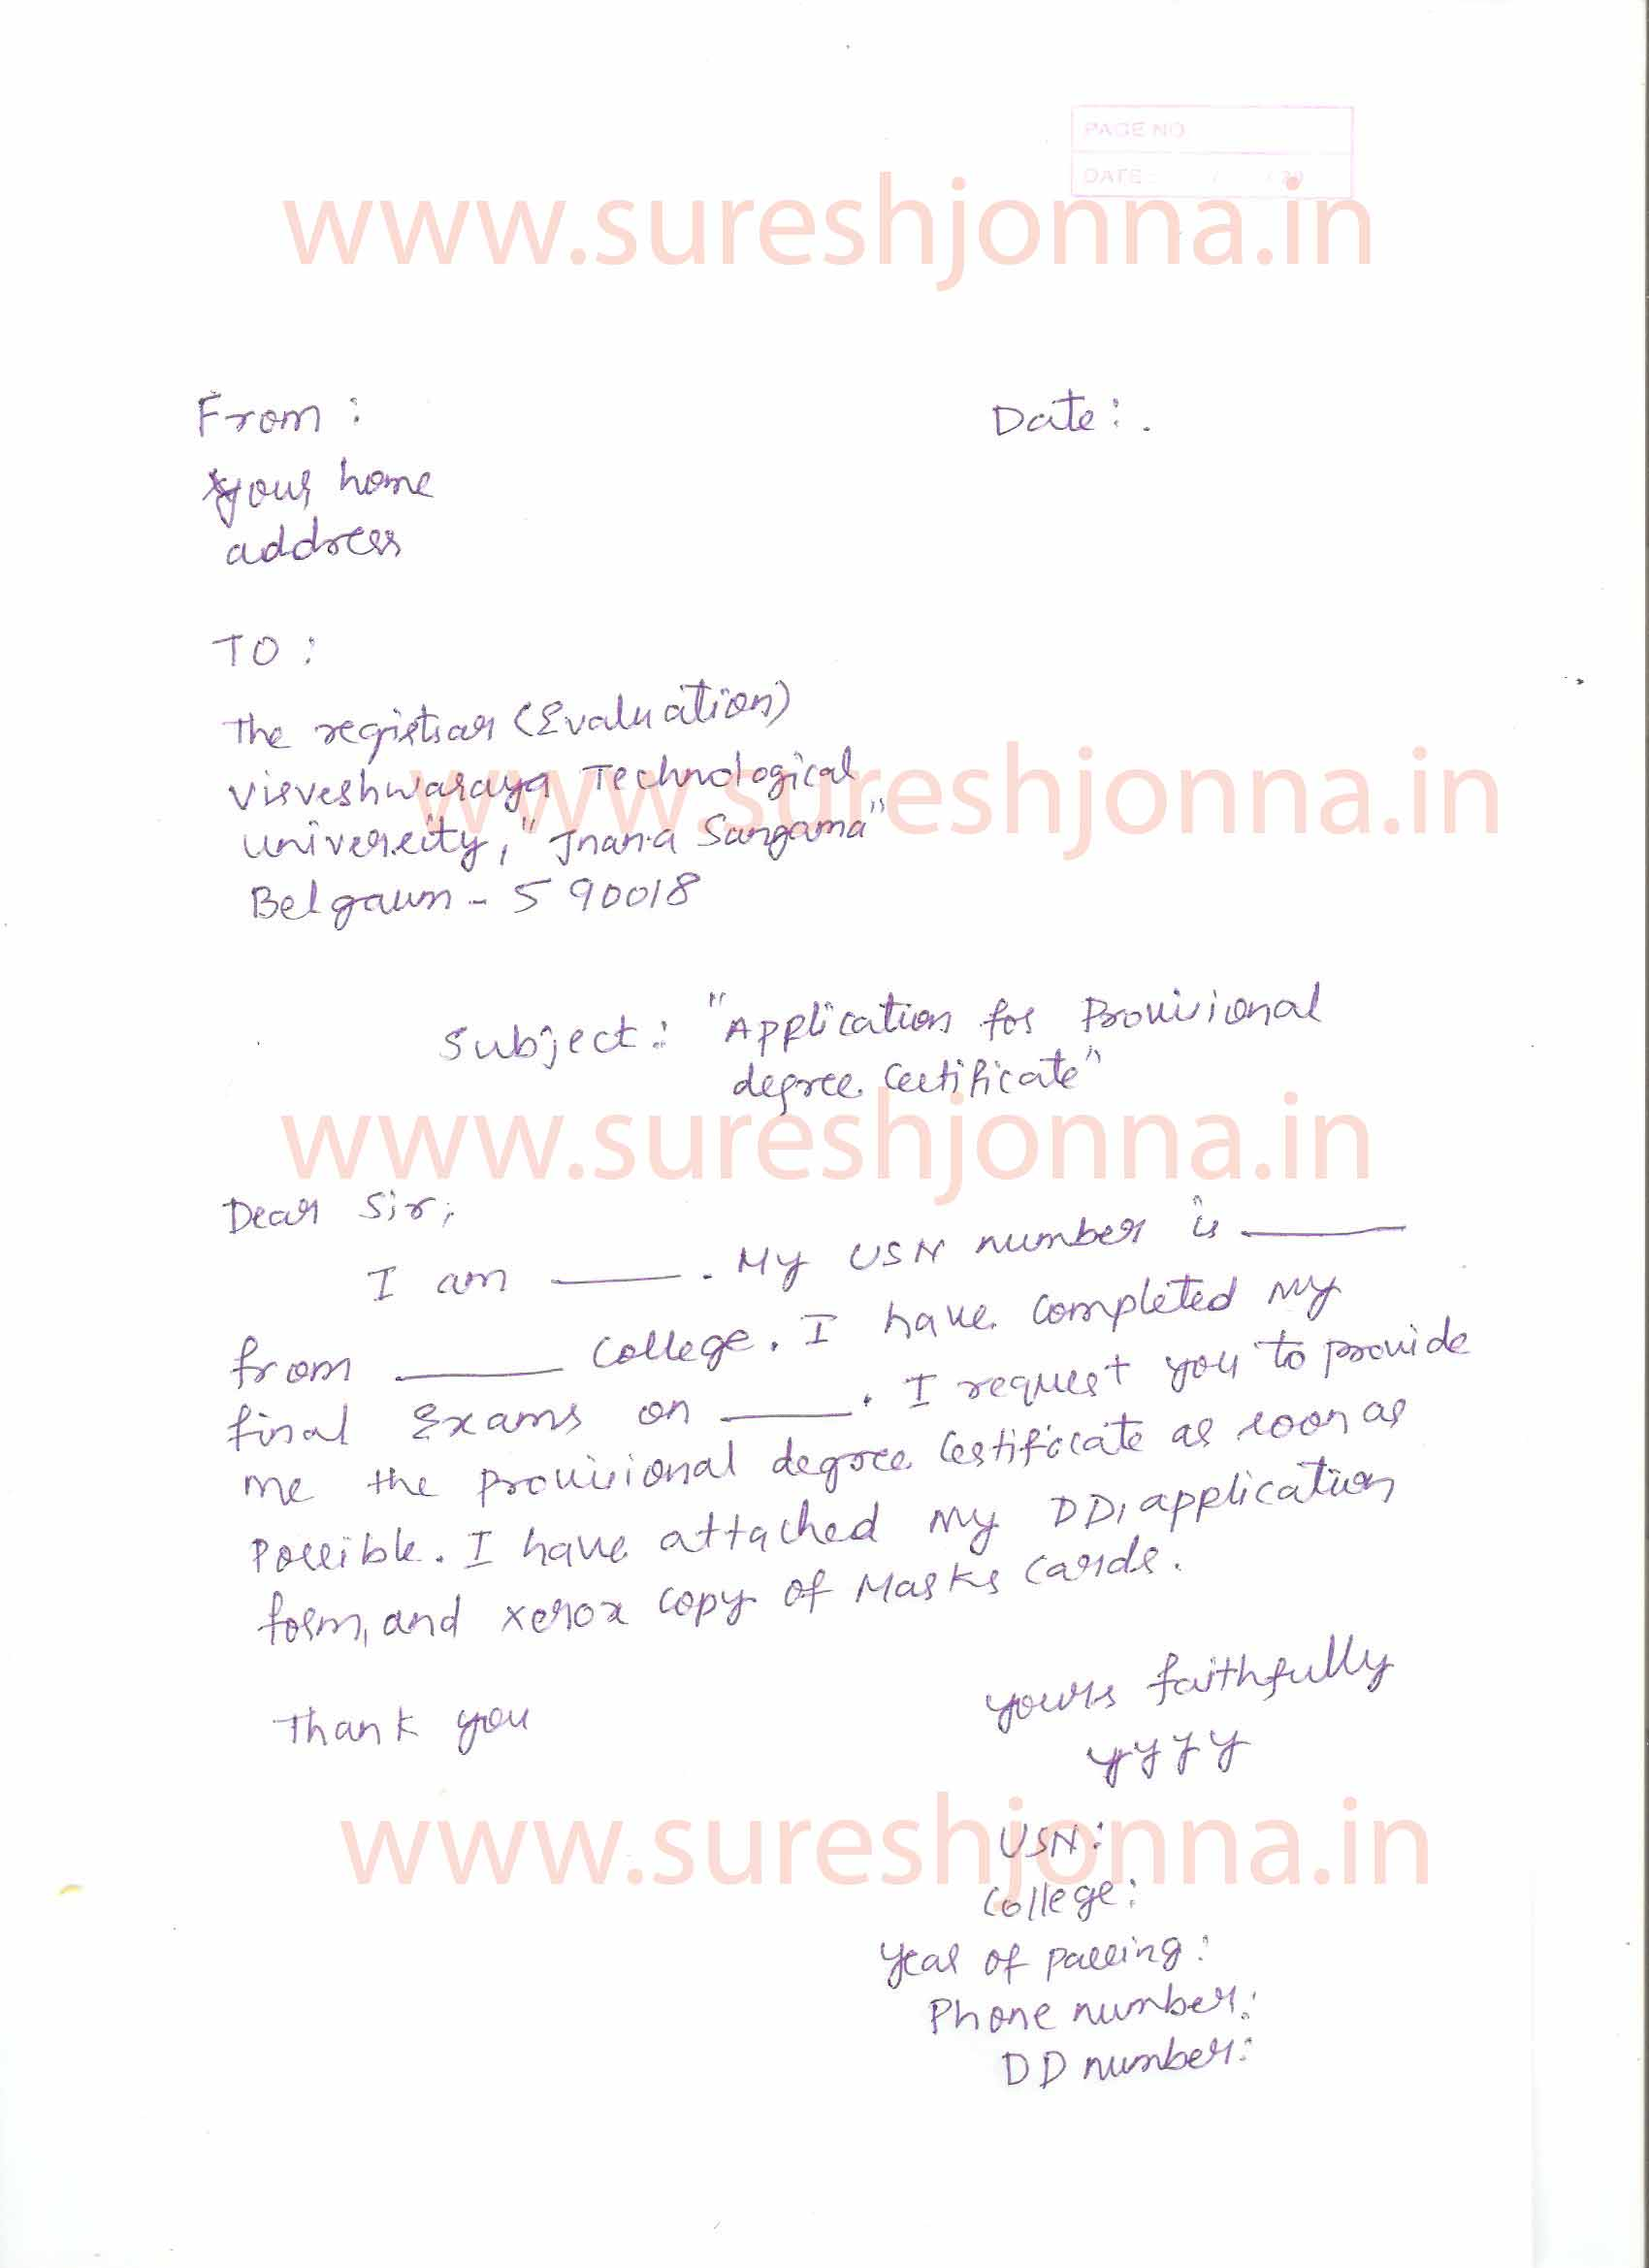 Request Letter For Transcript From College